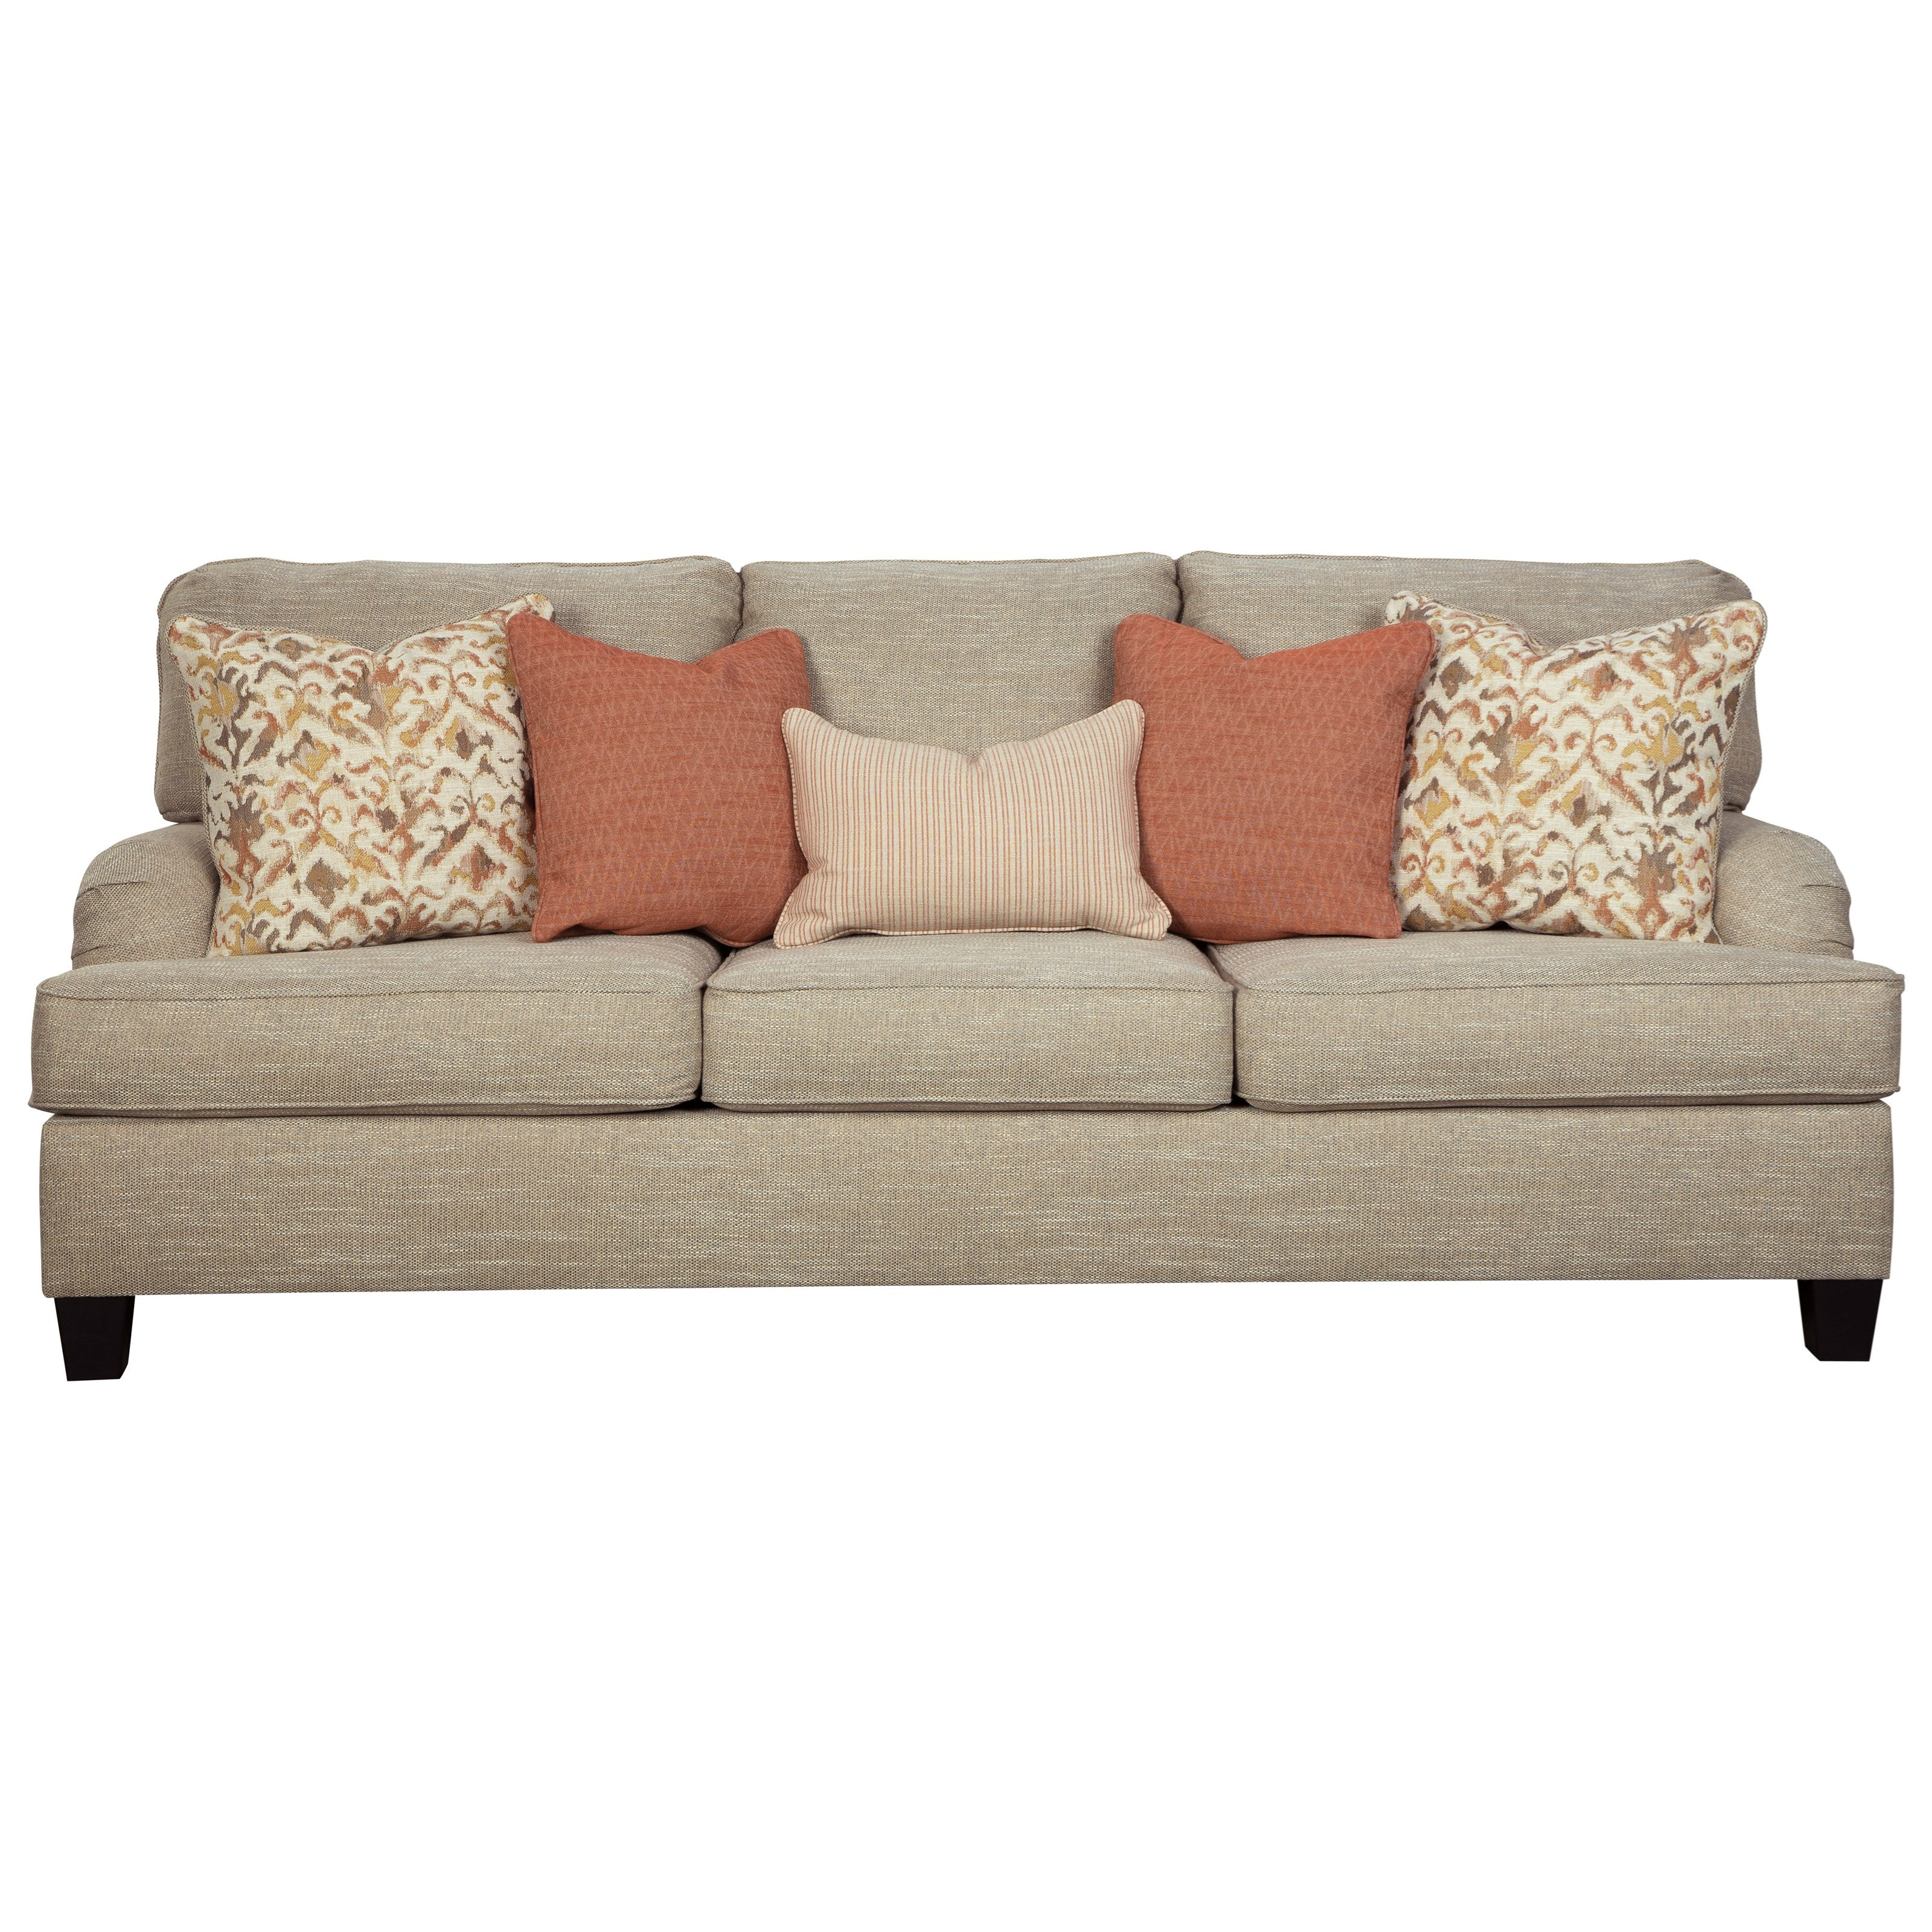 Almanza Sofa by Signature Design by Ashley at Standard Furniture